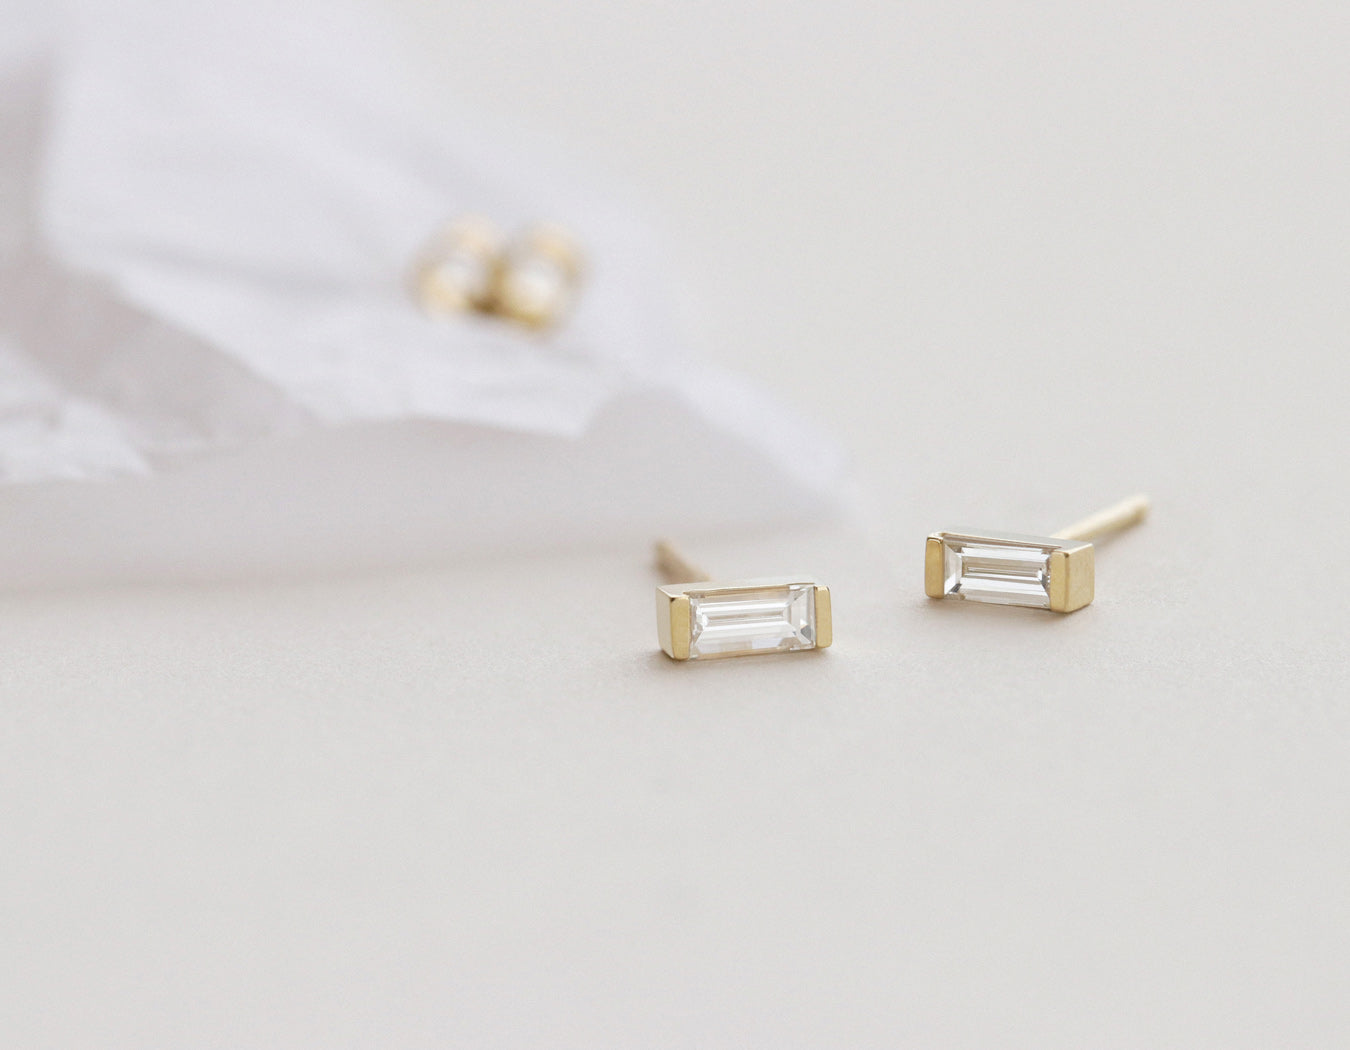 gold earrings collection yellow baguette min stud diamond doublestud diamondbaguette yg chain double ef earring